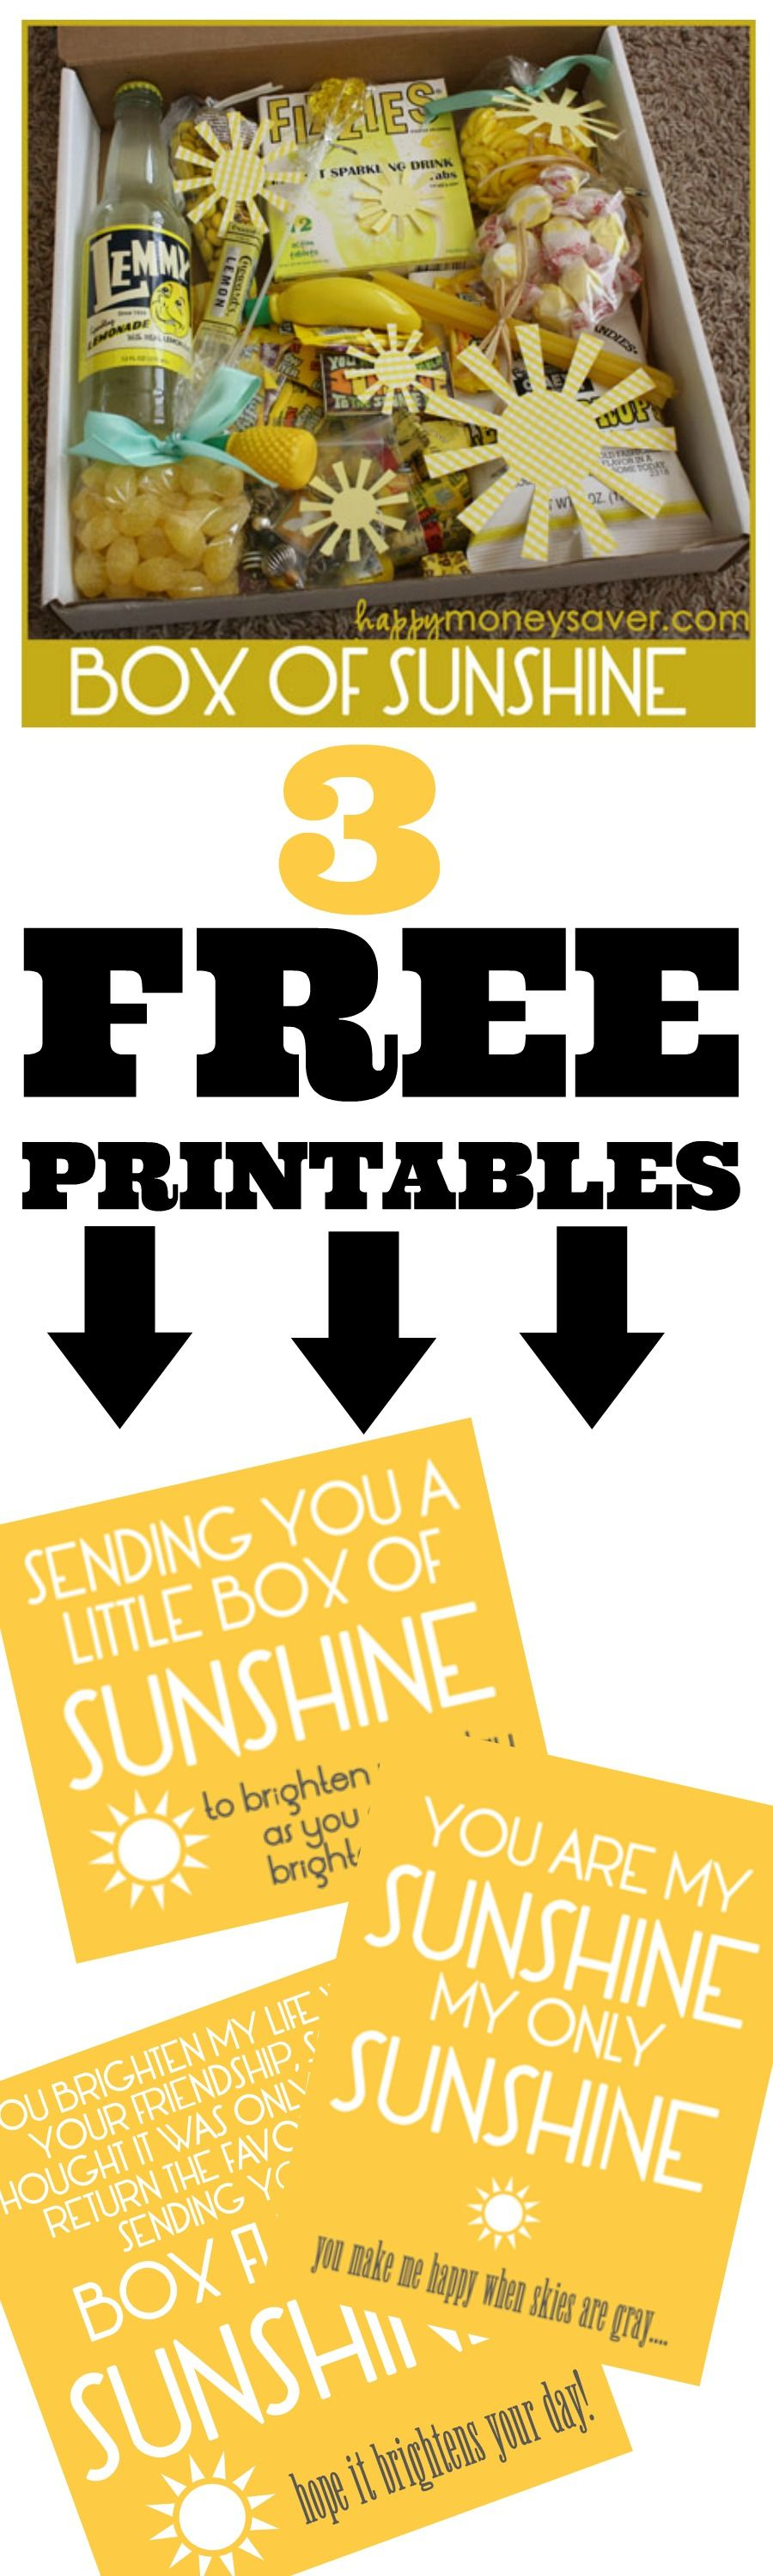 Free Printable - Send A Box Of Sunshine To Brighten Someones Day - Box Of Sunshine Free Printable